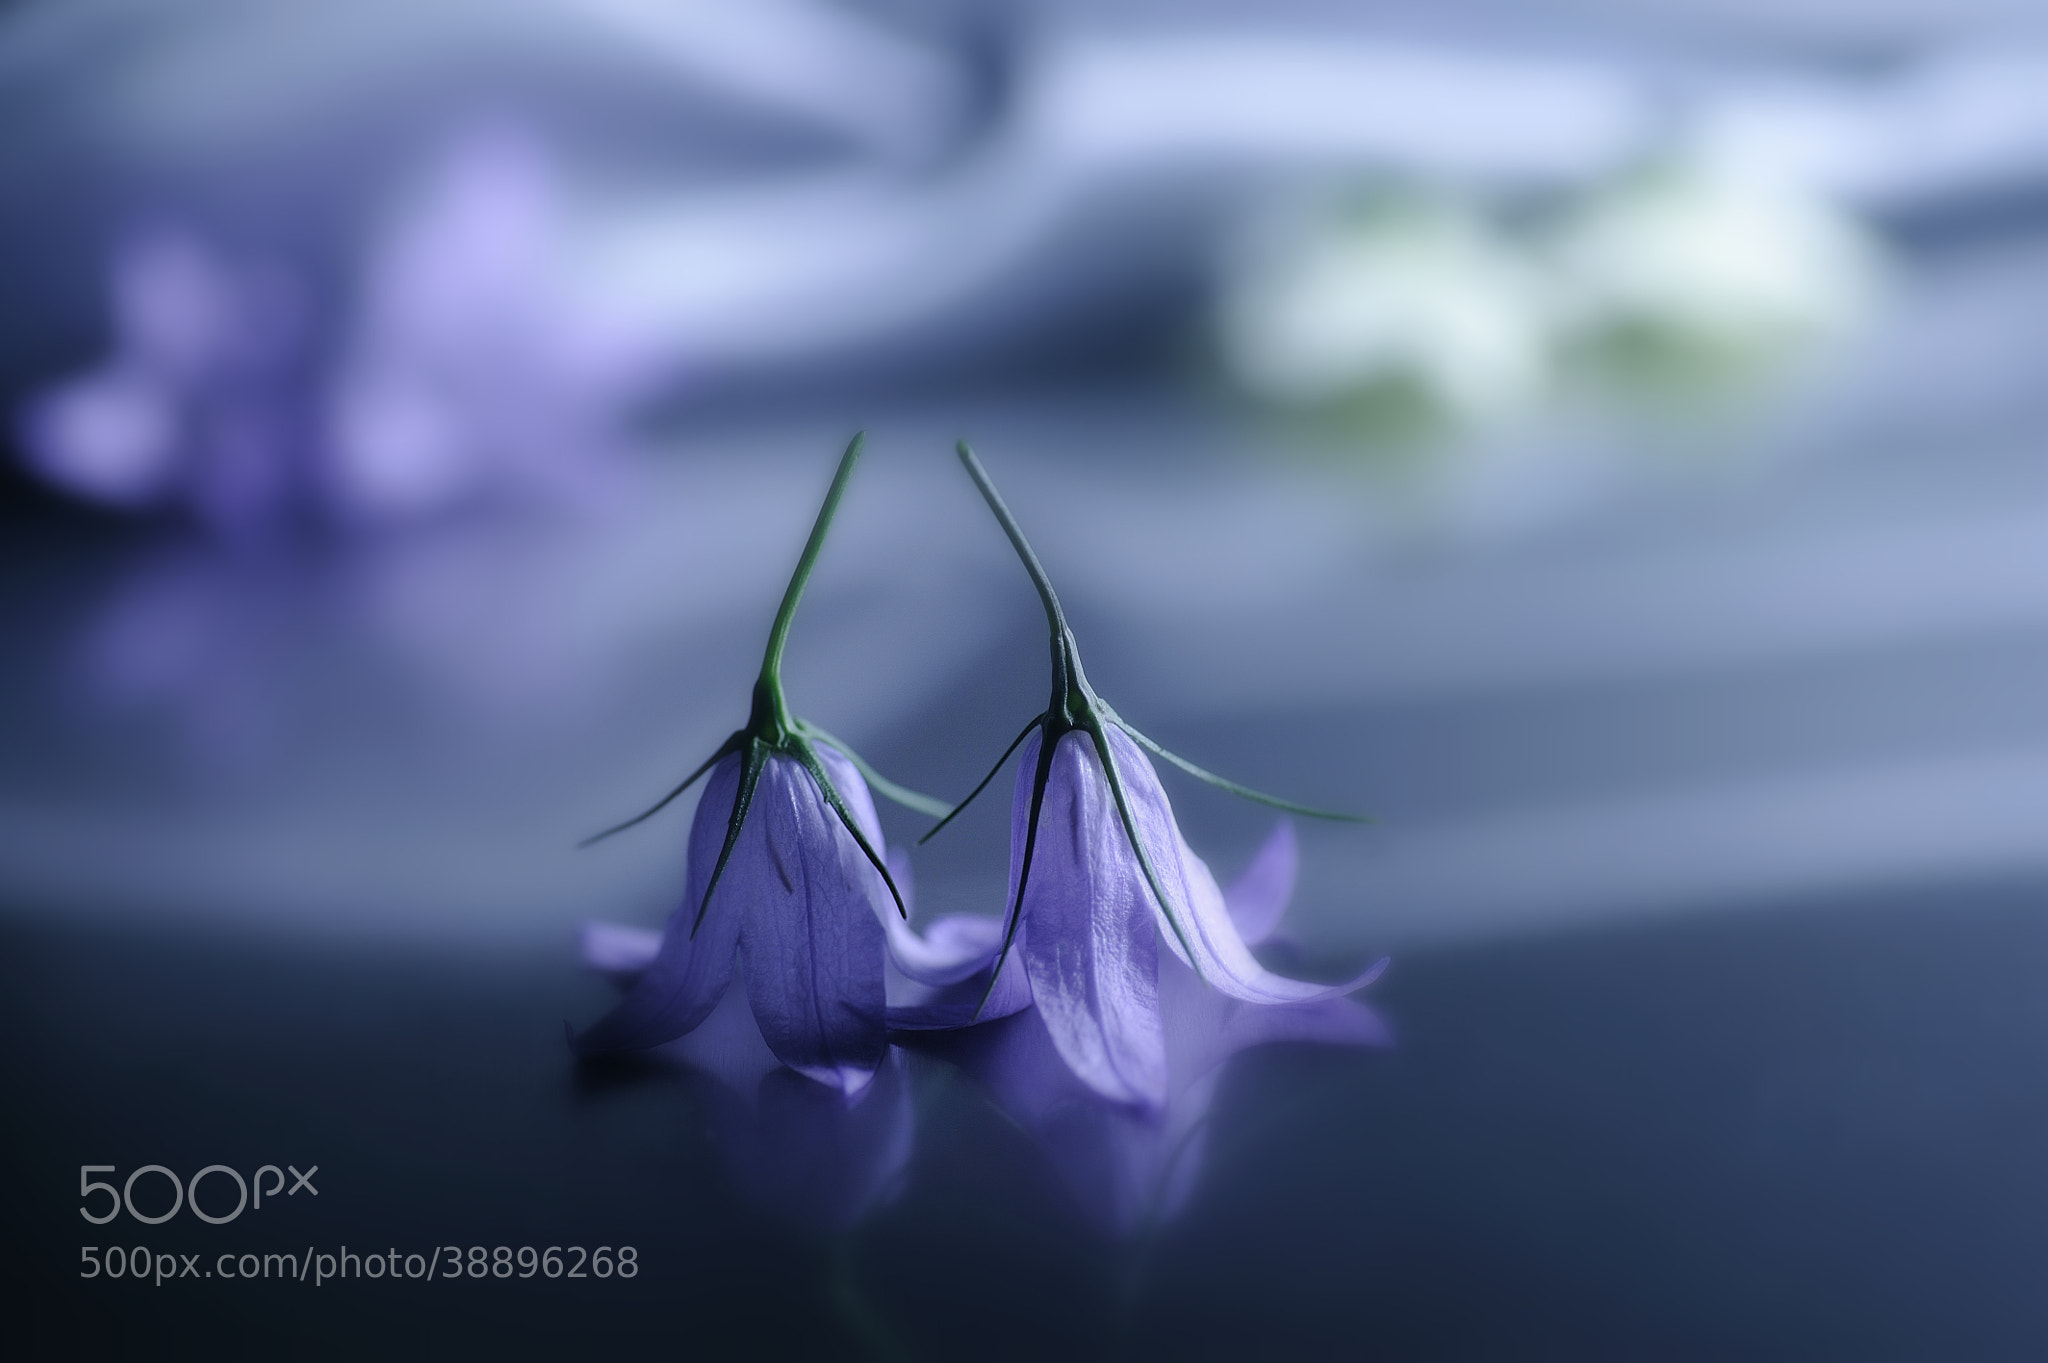 Photograph This Time the Dream's on Me by Lafugue Logos on 500px